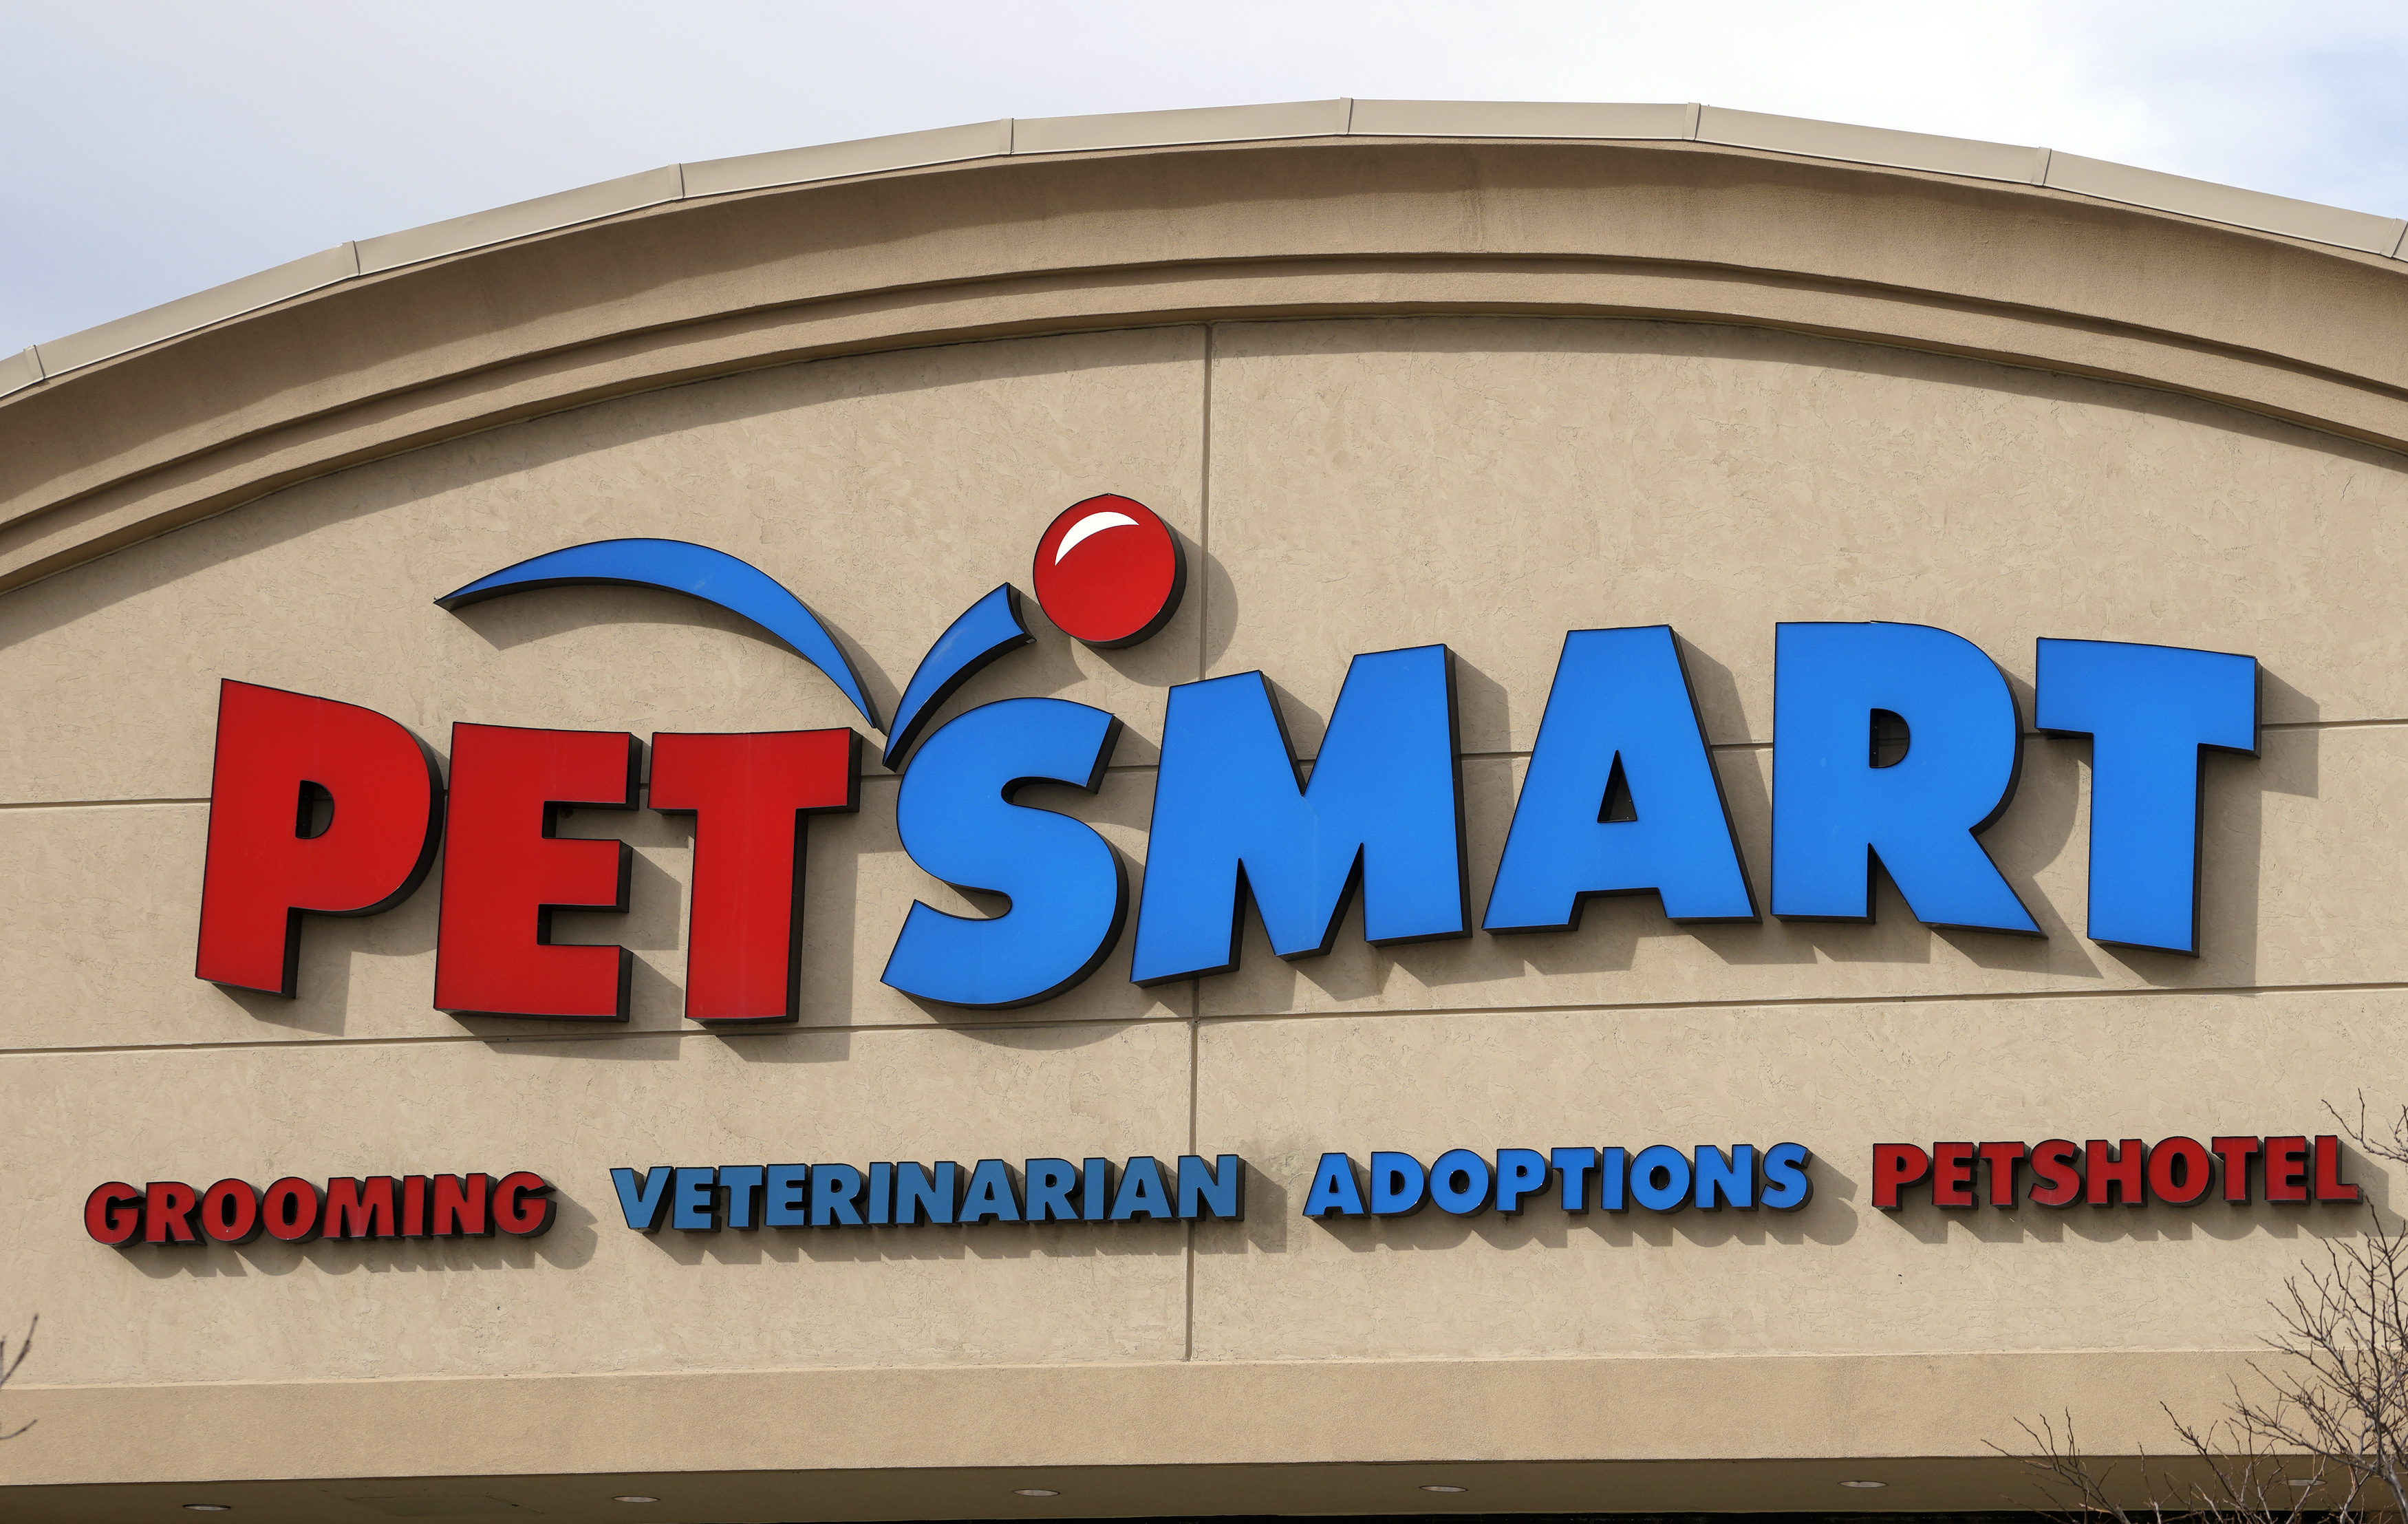 The Petsmart store in Westminster, Colo., is seen Nov. 18, 2014